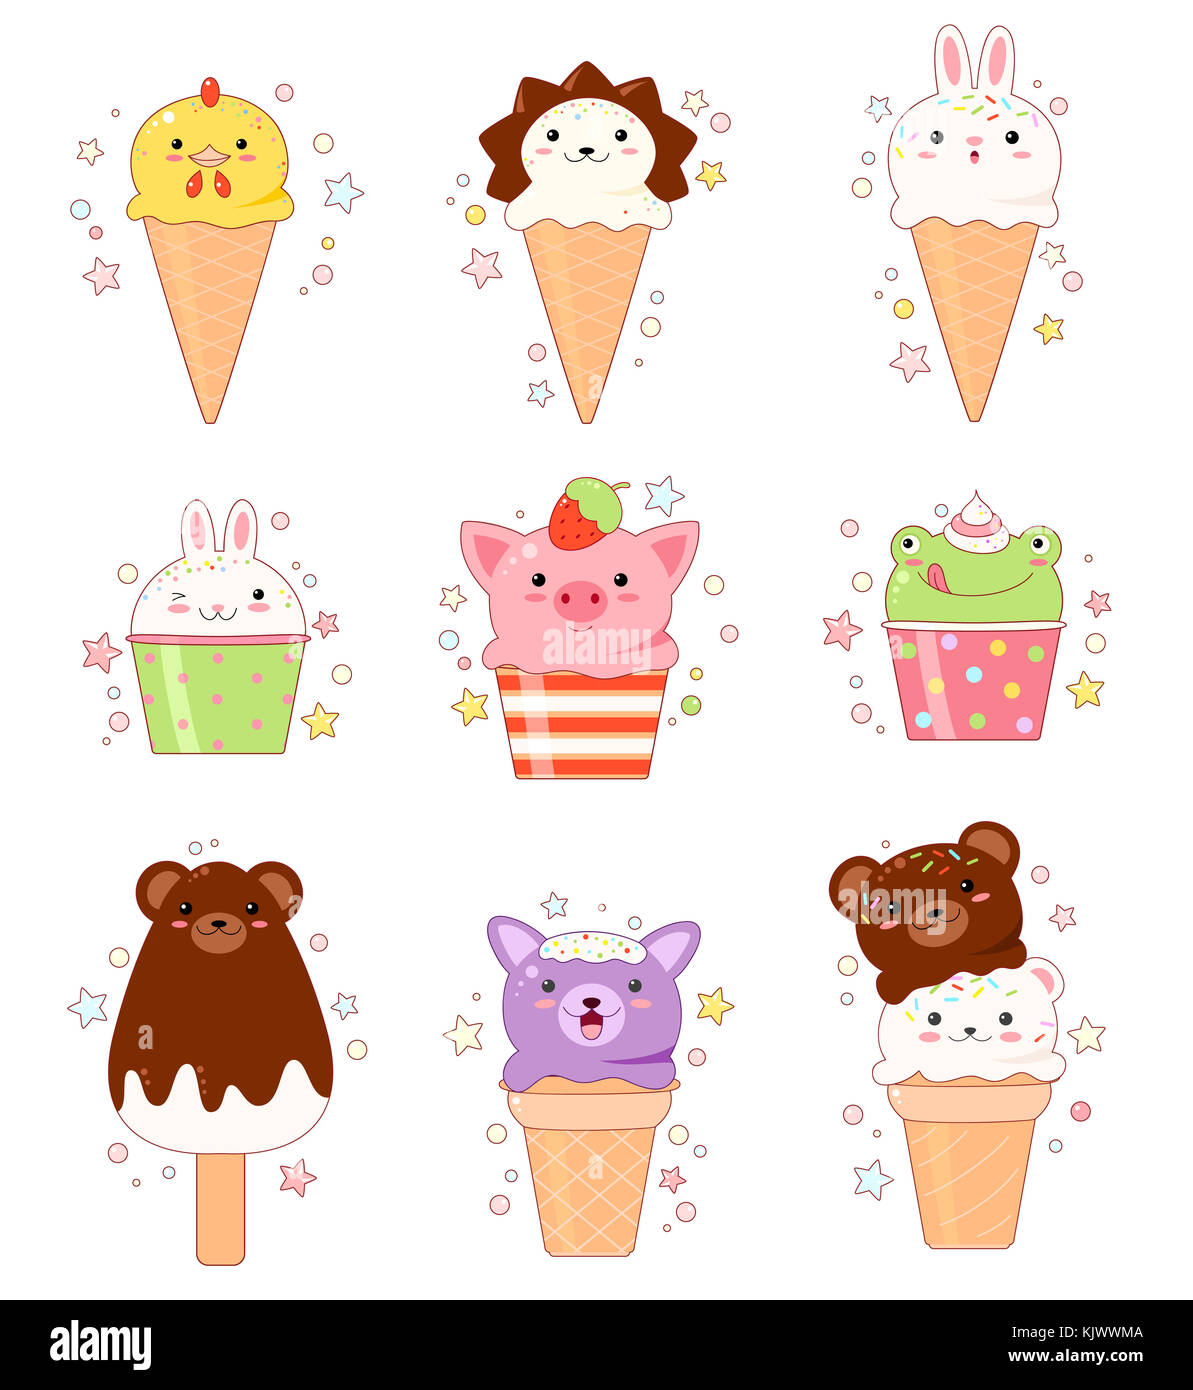 Vector set of animal shaped ice cream. Vanilla, chocolate, lemon, strawberry. In kawaii style with smiling face - Stock Image